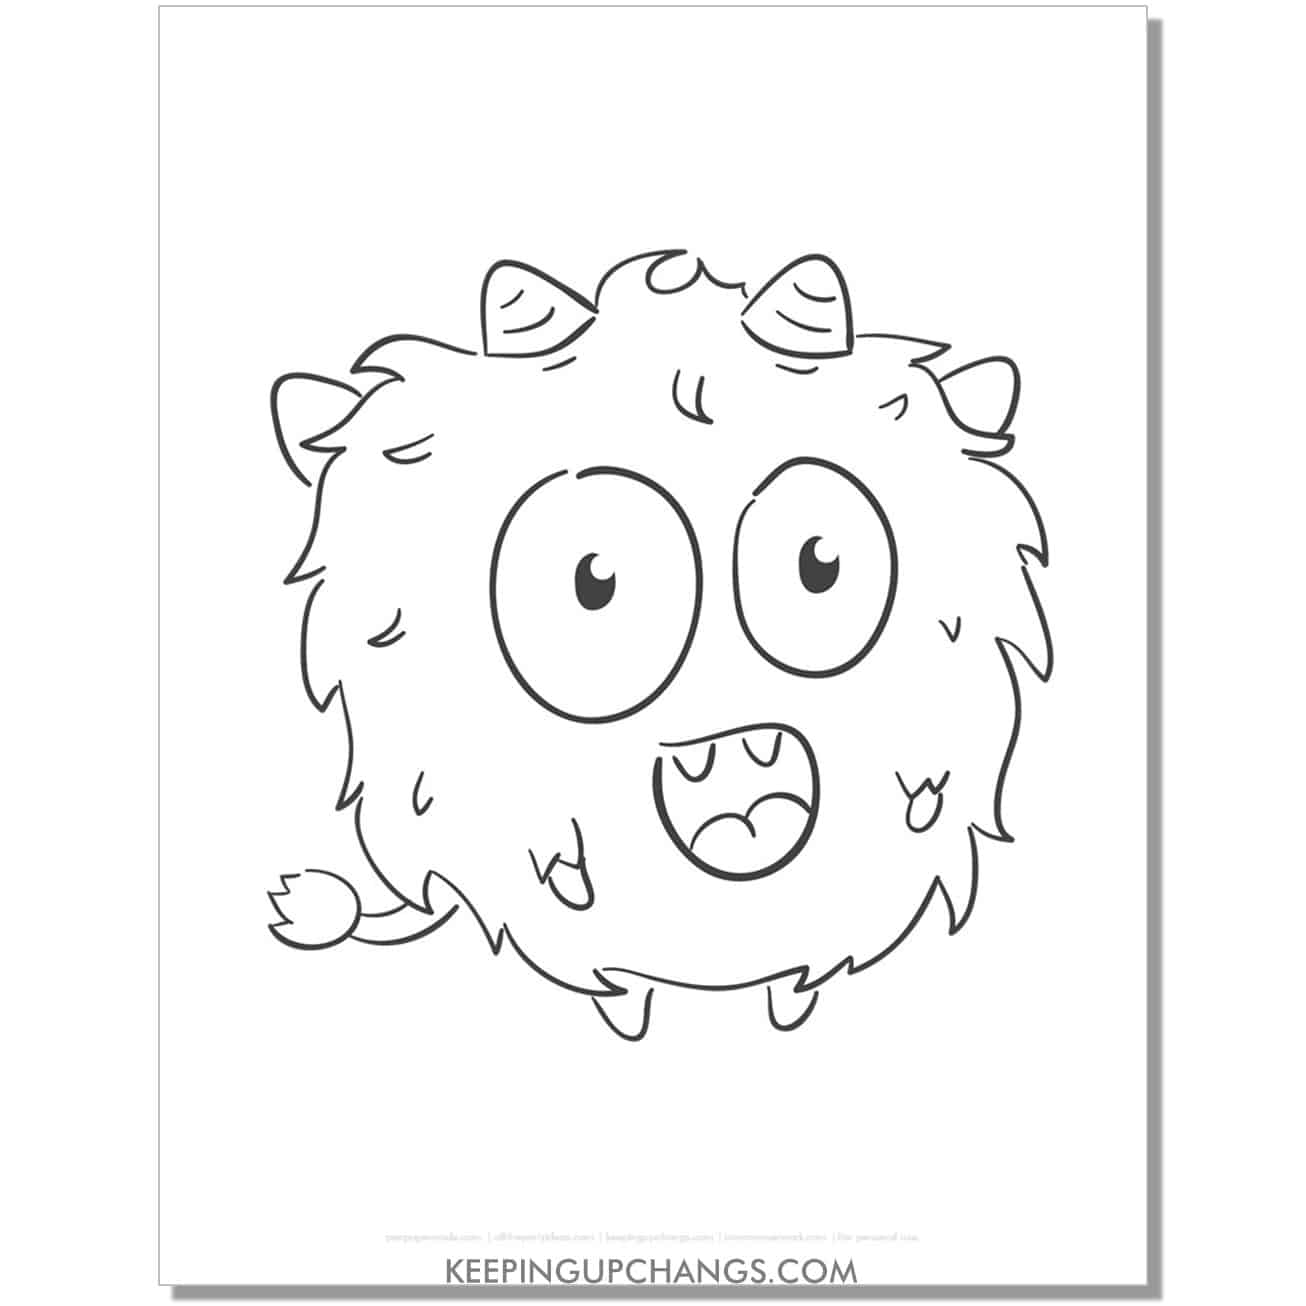 free round, fuzzy monster coloring page.